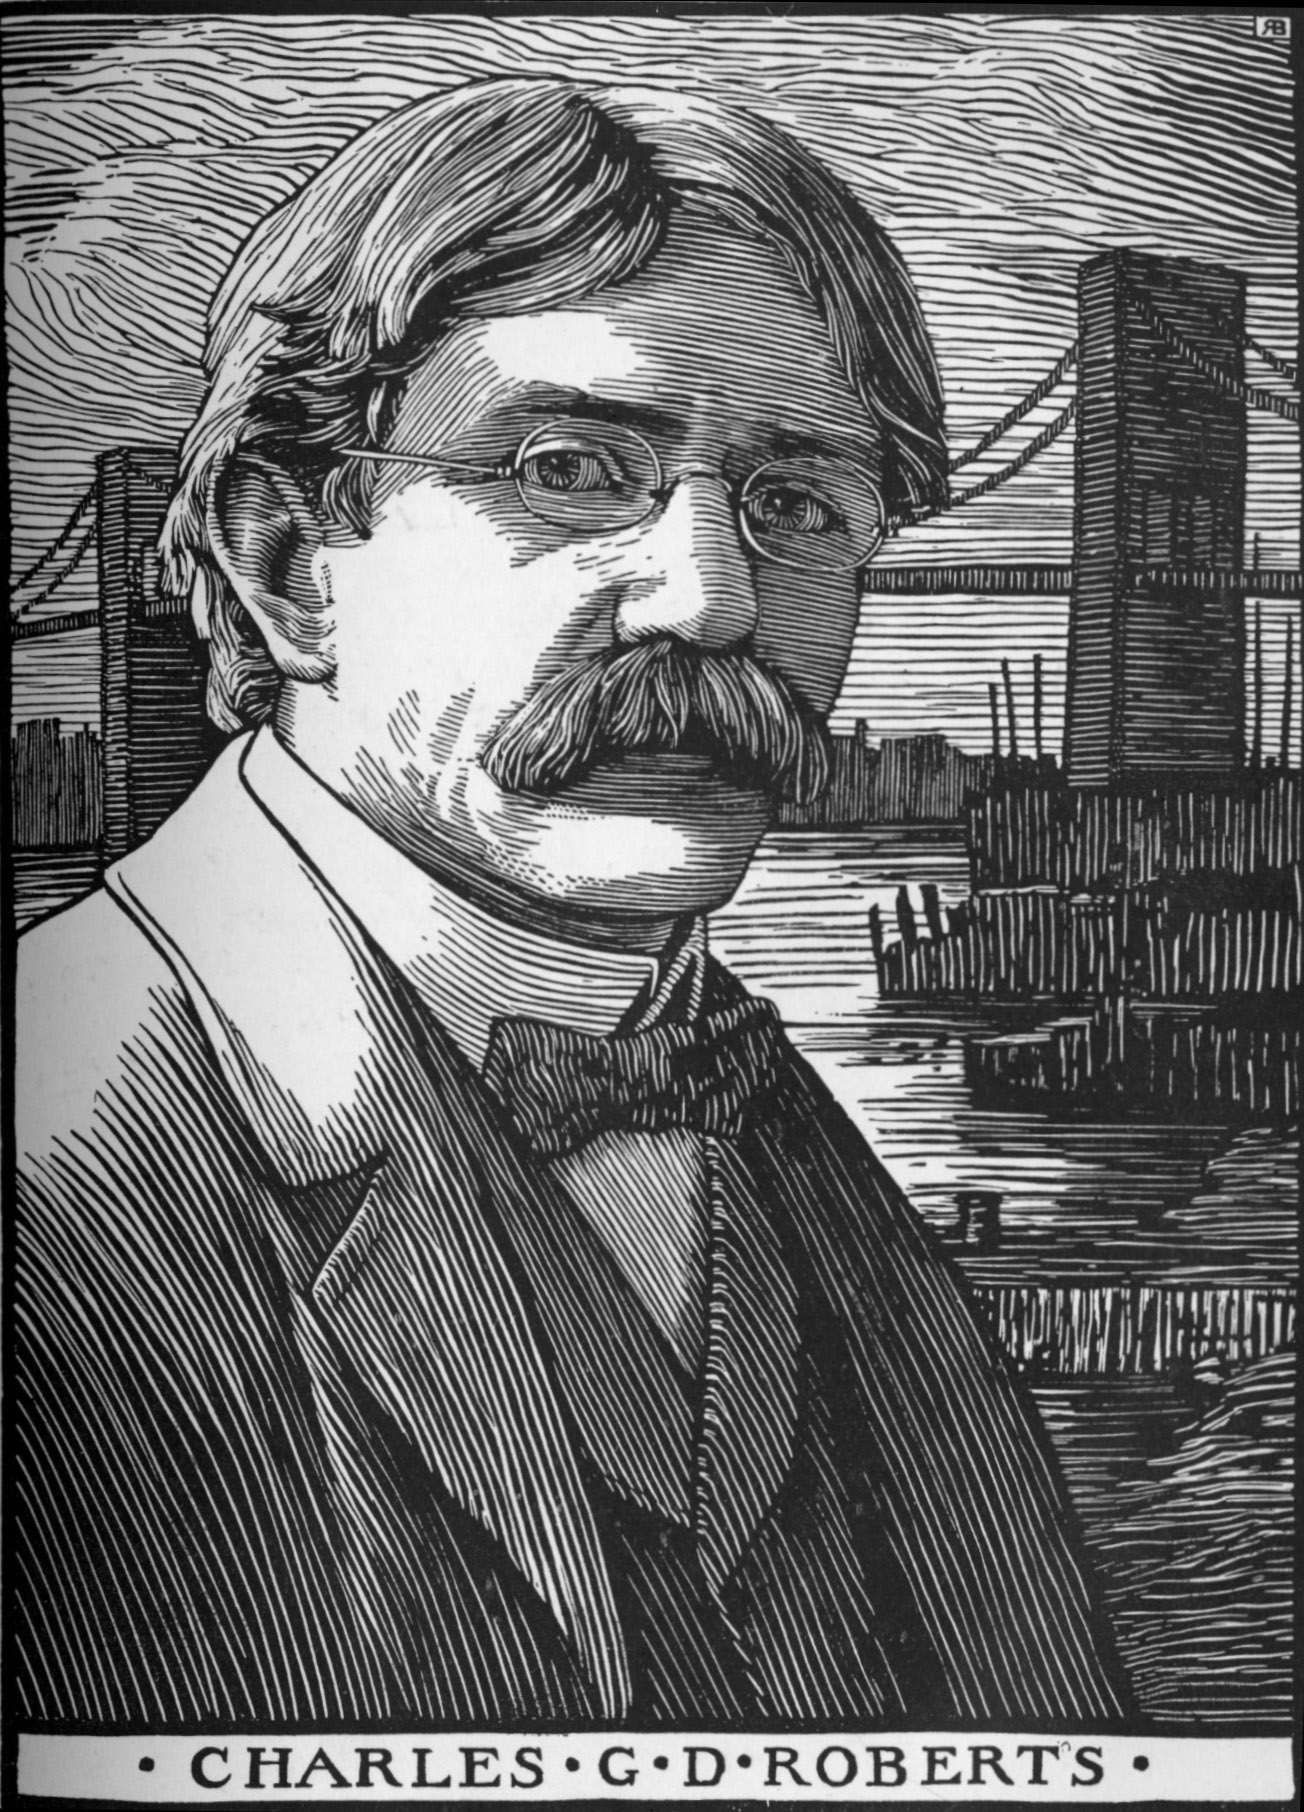 Image is a woodcut of Charles G.D. Roberts. He is shown from the chest up with about a ¾ face position. He is wearing oval glasses, and his hair is wavy and parted off centre on the right side. He has a large moustache and is clean-shaved elsewhere. His gaze is directed at the viewer. He is wearing a stiff collared white shirt, a bowtie, a vest, and a blazer. In the background is a lake and a suspension bridge. The image is vertically displayed.